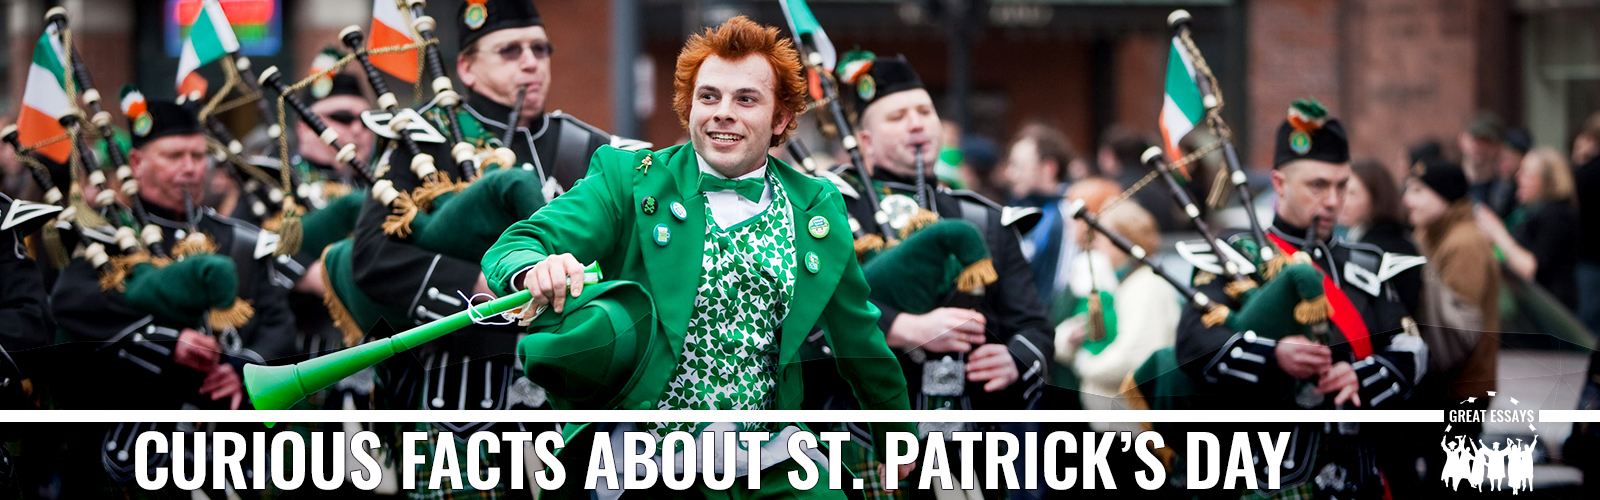 8 Curious Facts about St. Patrick's Day and Ireland That You Probably Didn't Know